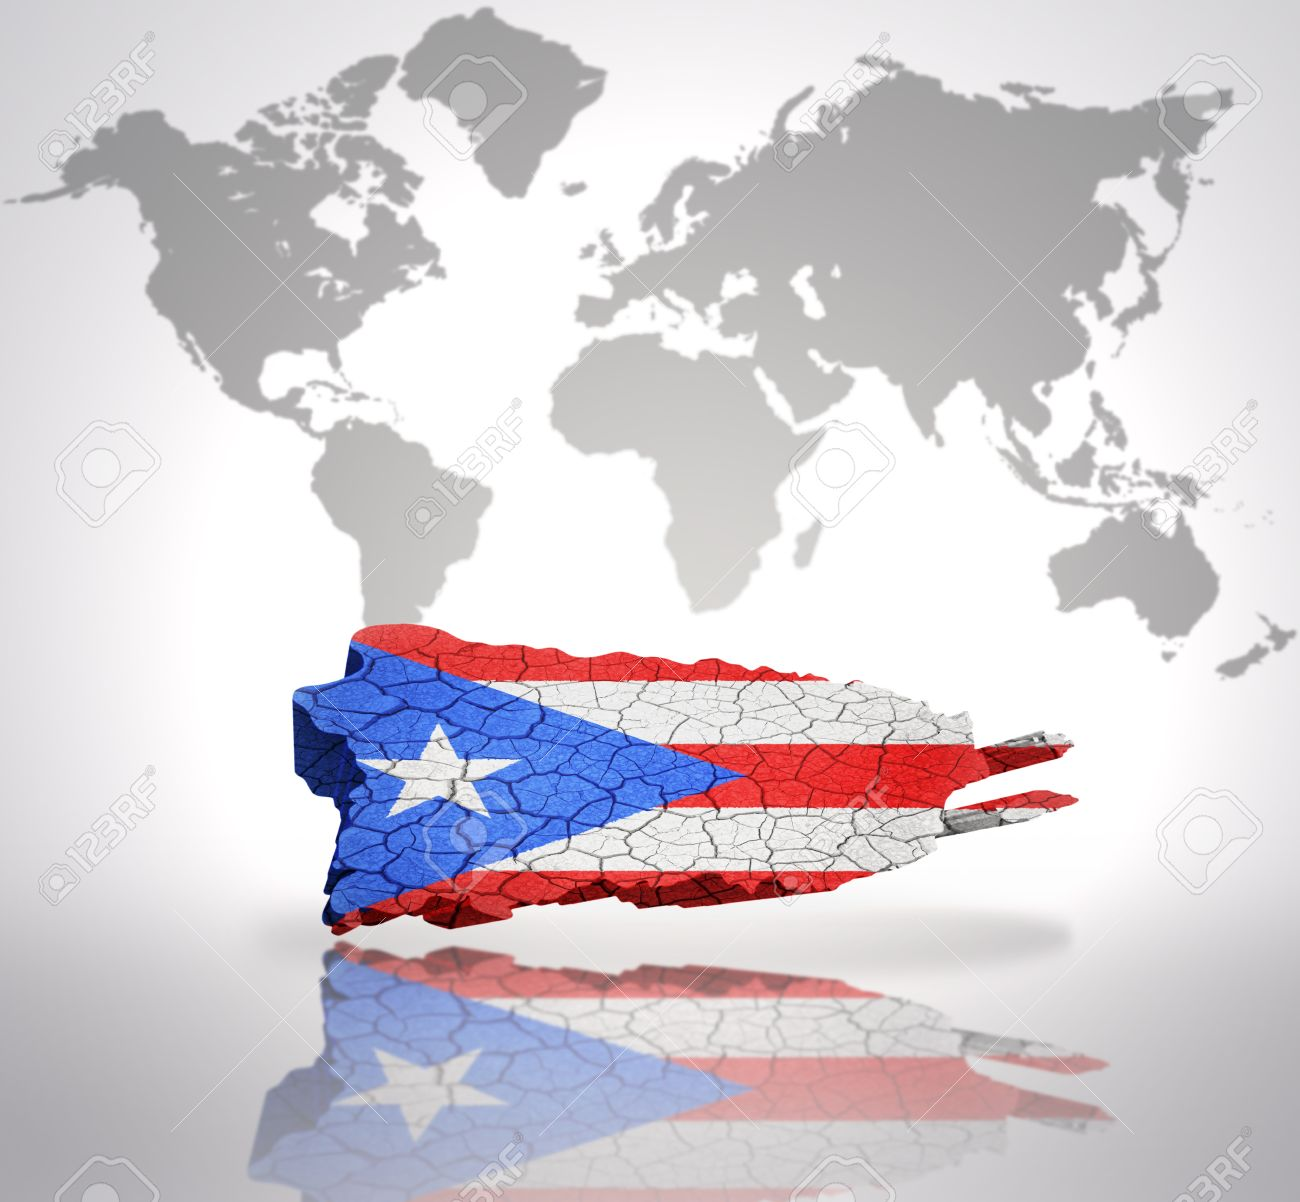 Map of Puerto Rico with Puerto Rican Flag on a world map background